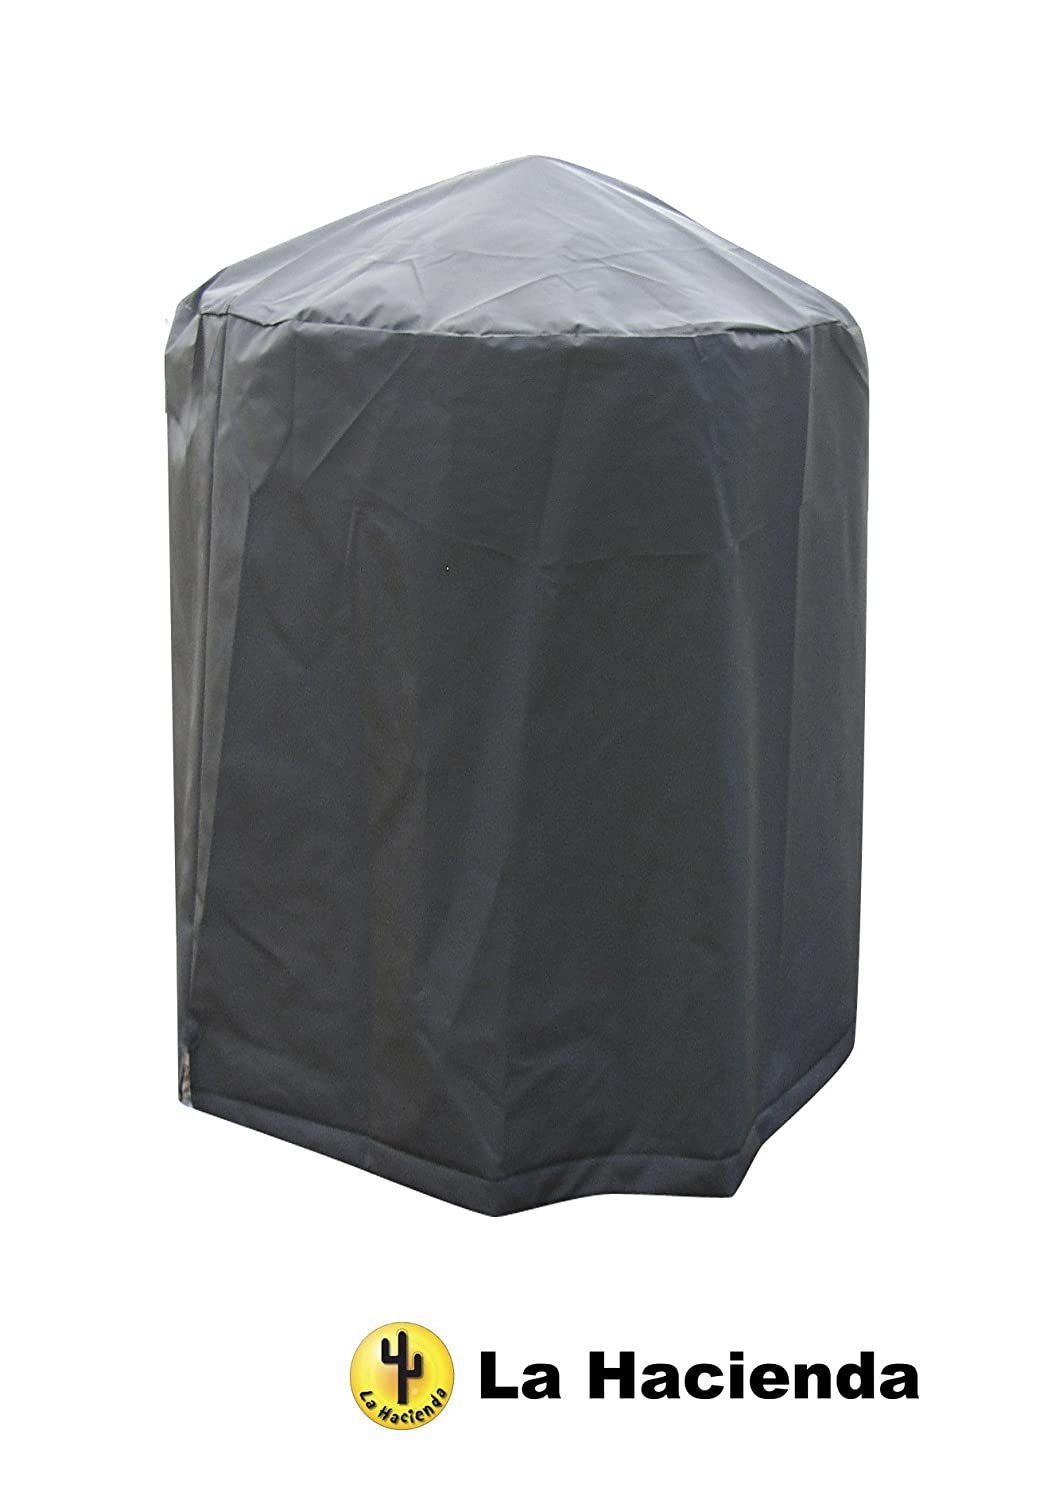 90cm high Outdoor Cover Suitable for Firepit or BBQ